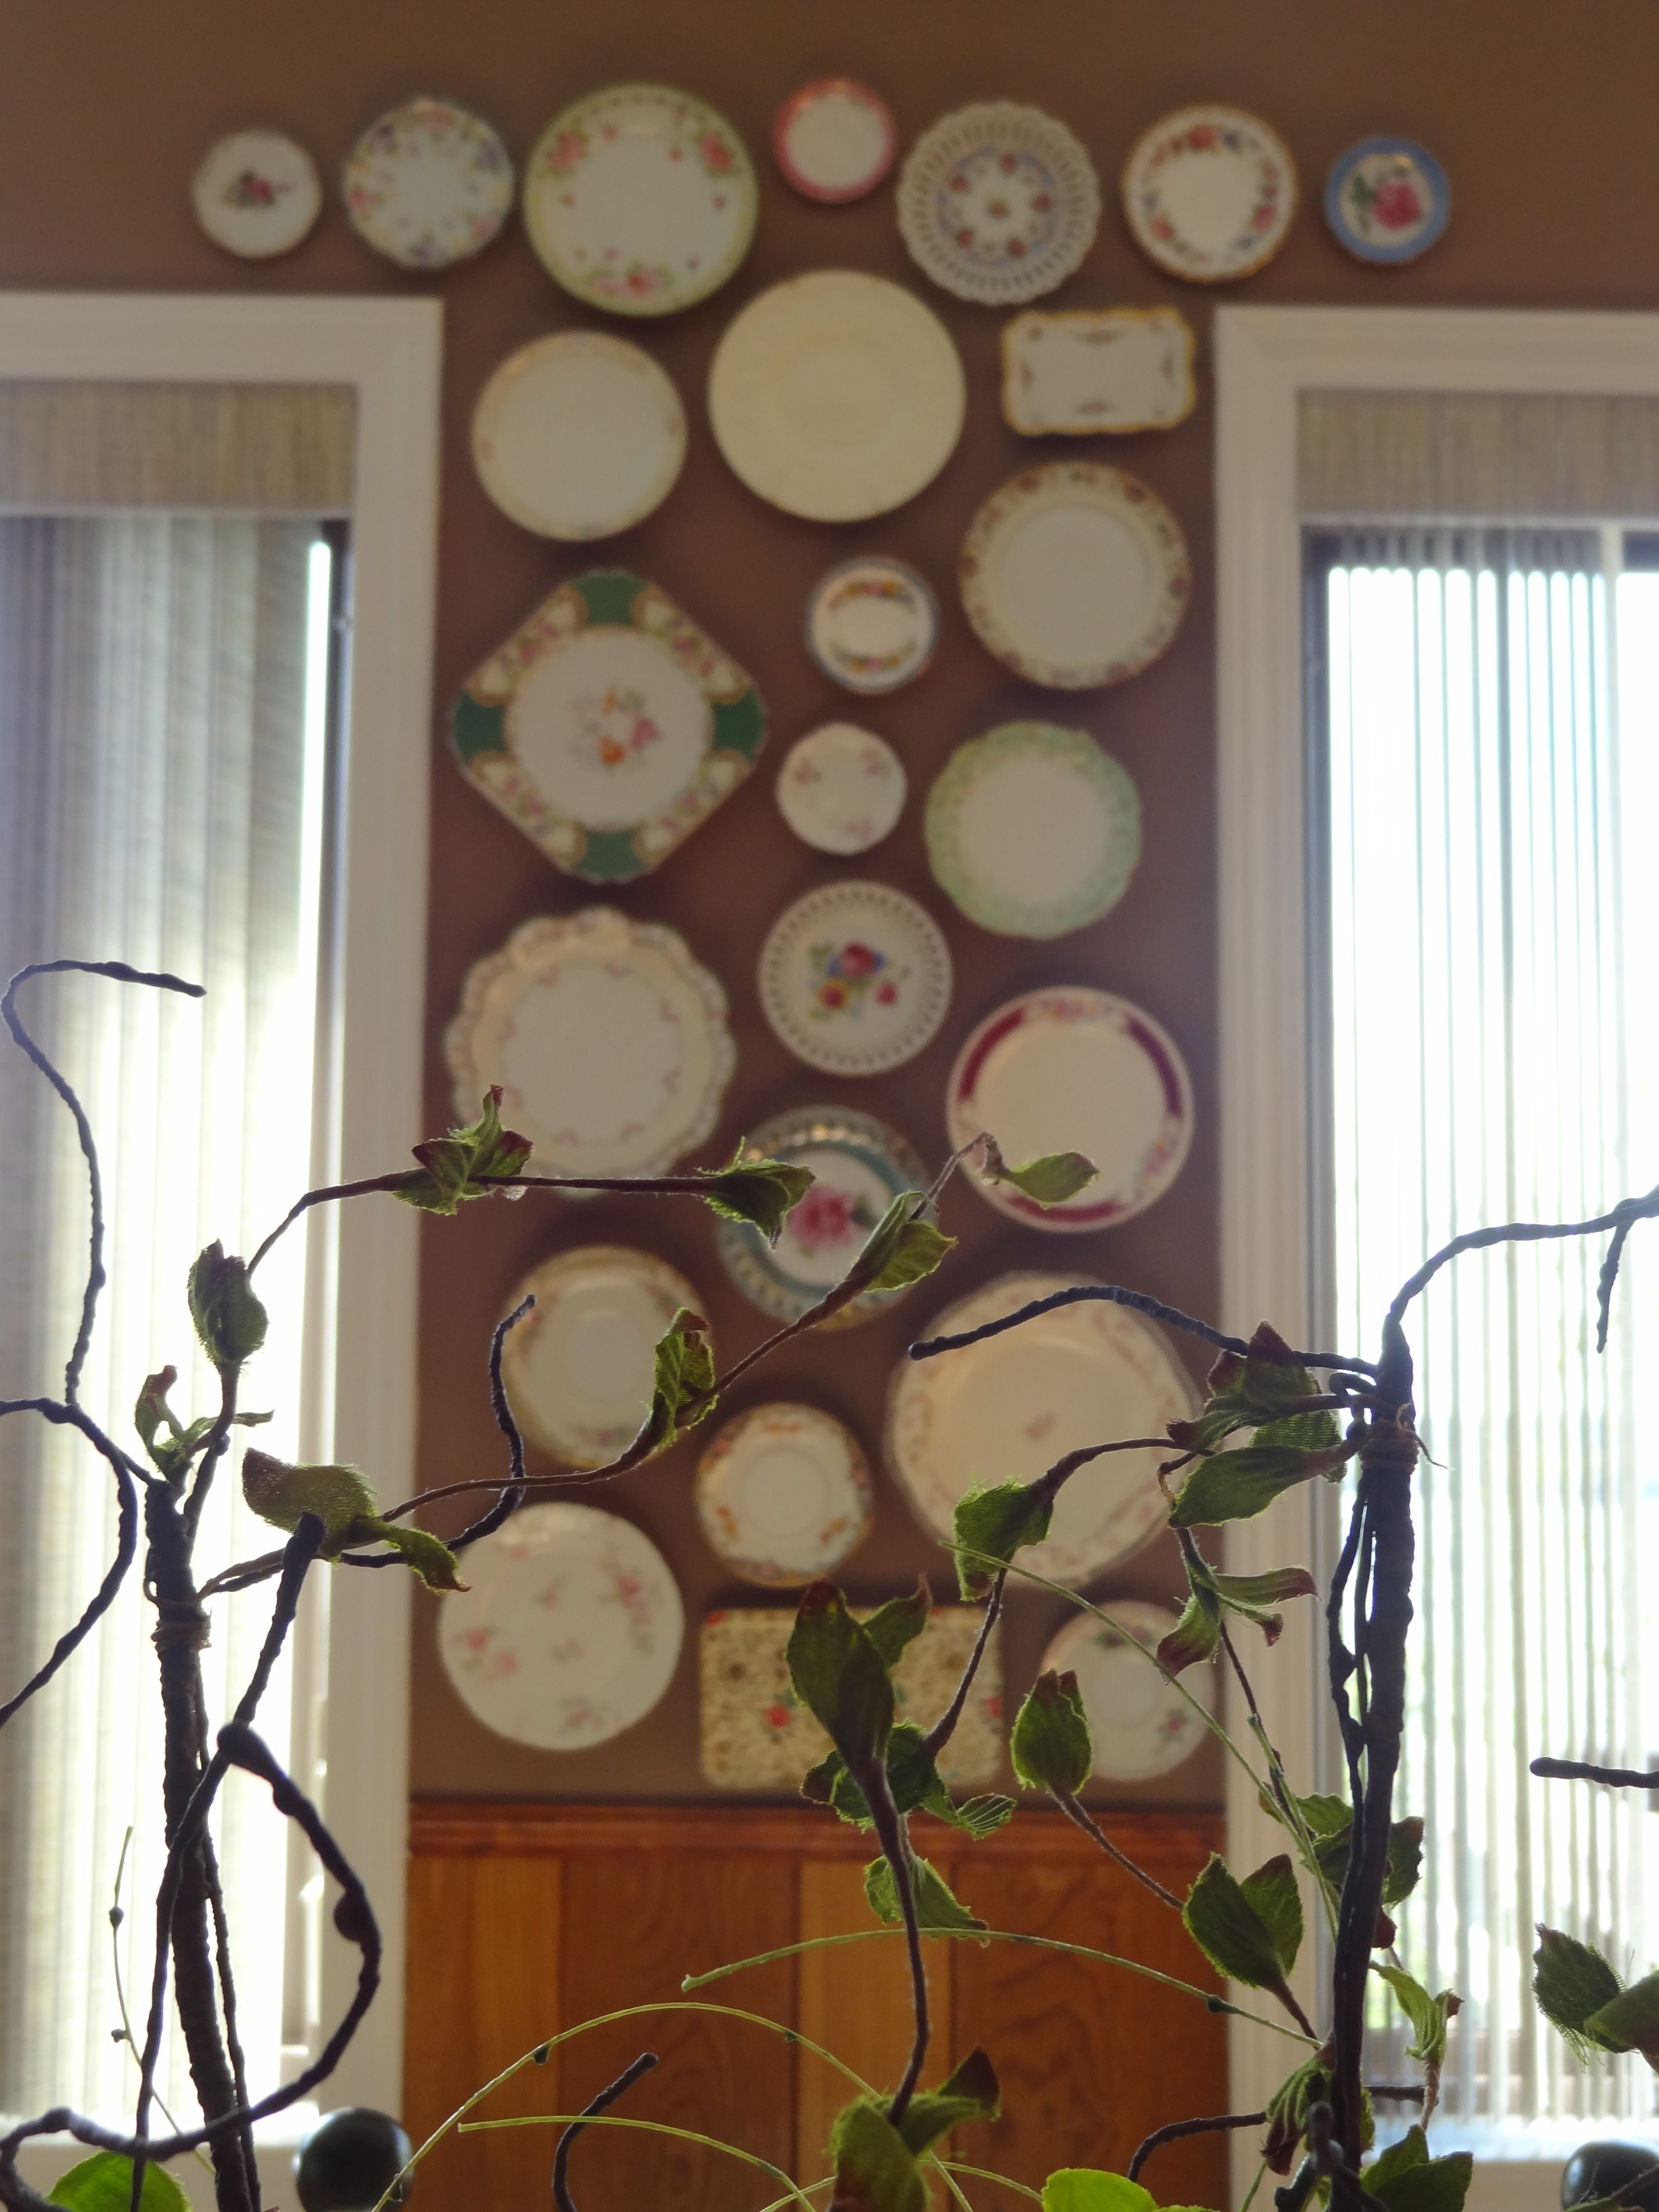 Kitchen Wall Decor With Plates : Antique plates on the kitchen wall decorating ideas